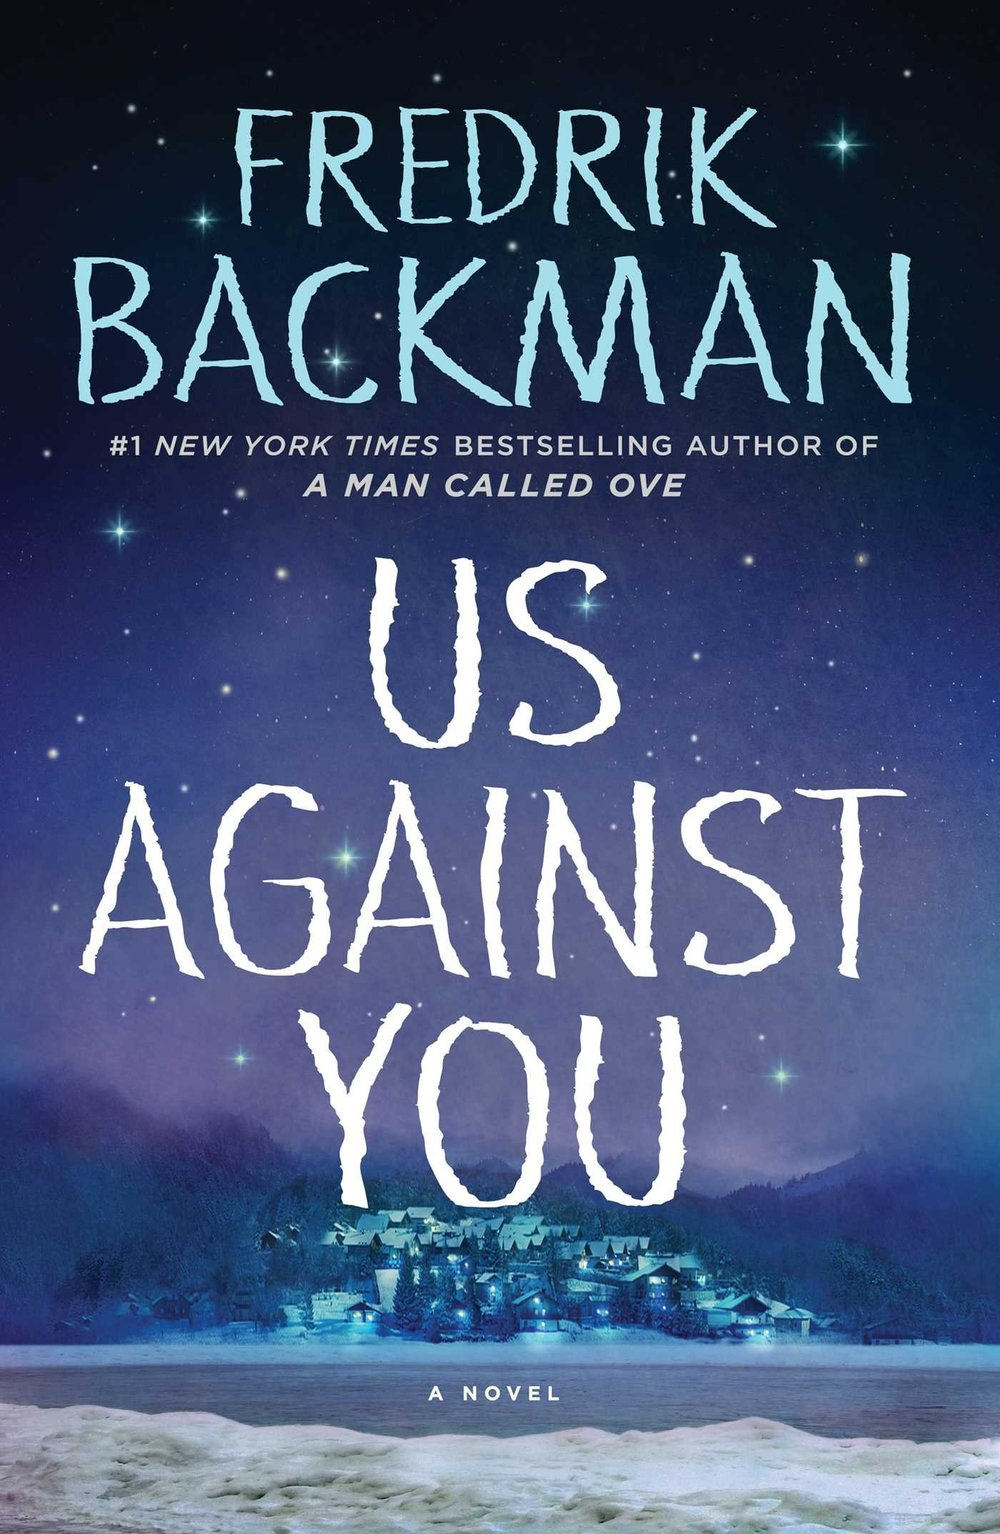 Us Against You by Frederik Backman - I marked my calendar for this sequel to Beartown the minute I finished it. I pre-ordered this book on Amazon because I'm the biggest fan of the writer, I got it in various forms - Audible version and Kindle version. I've finished it but I'm honestly thinking of reading it again! I'm so excited to review this book for you guys today.